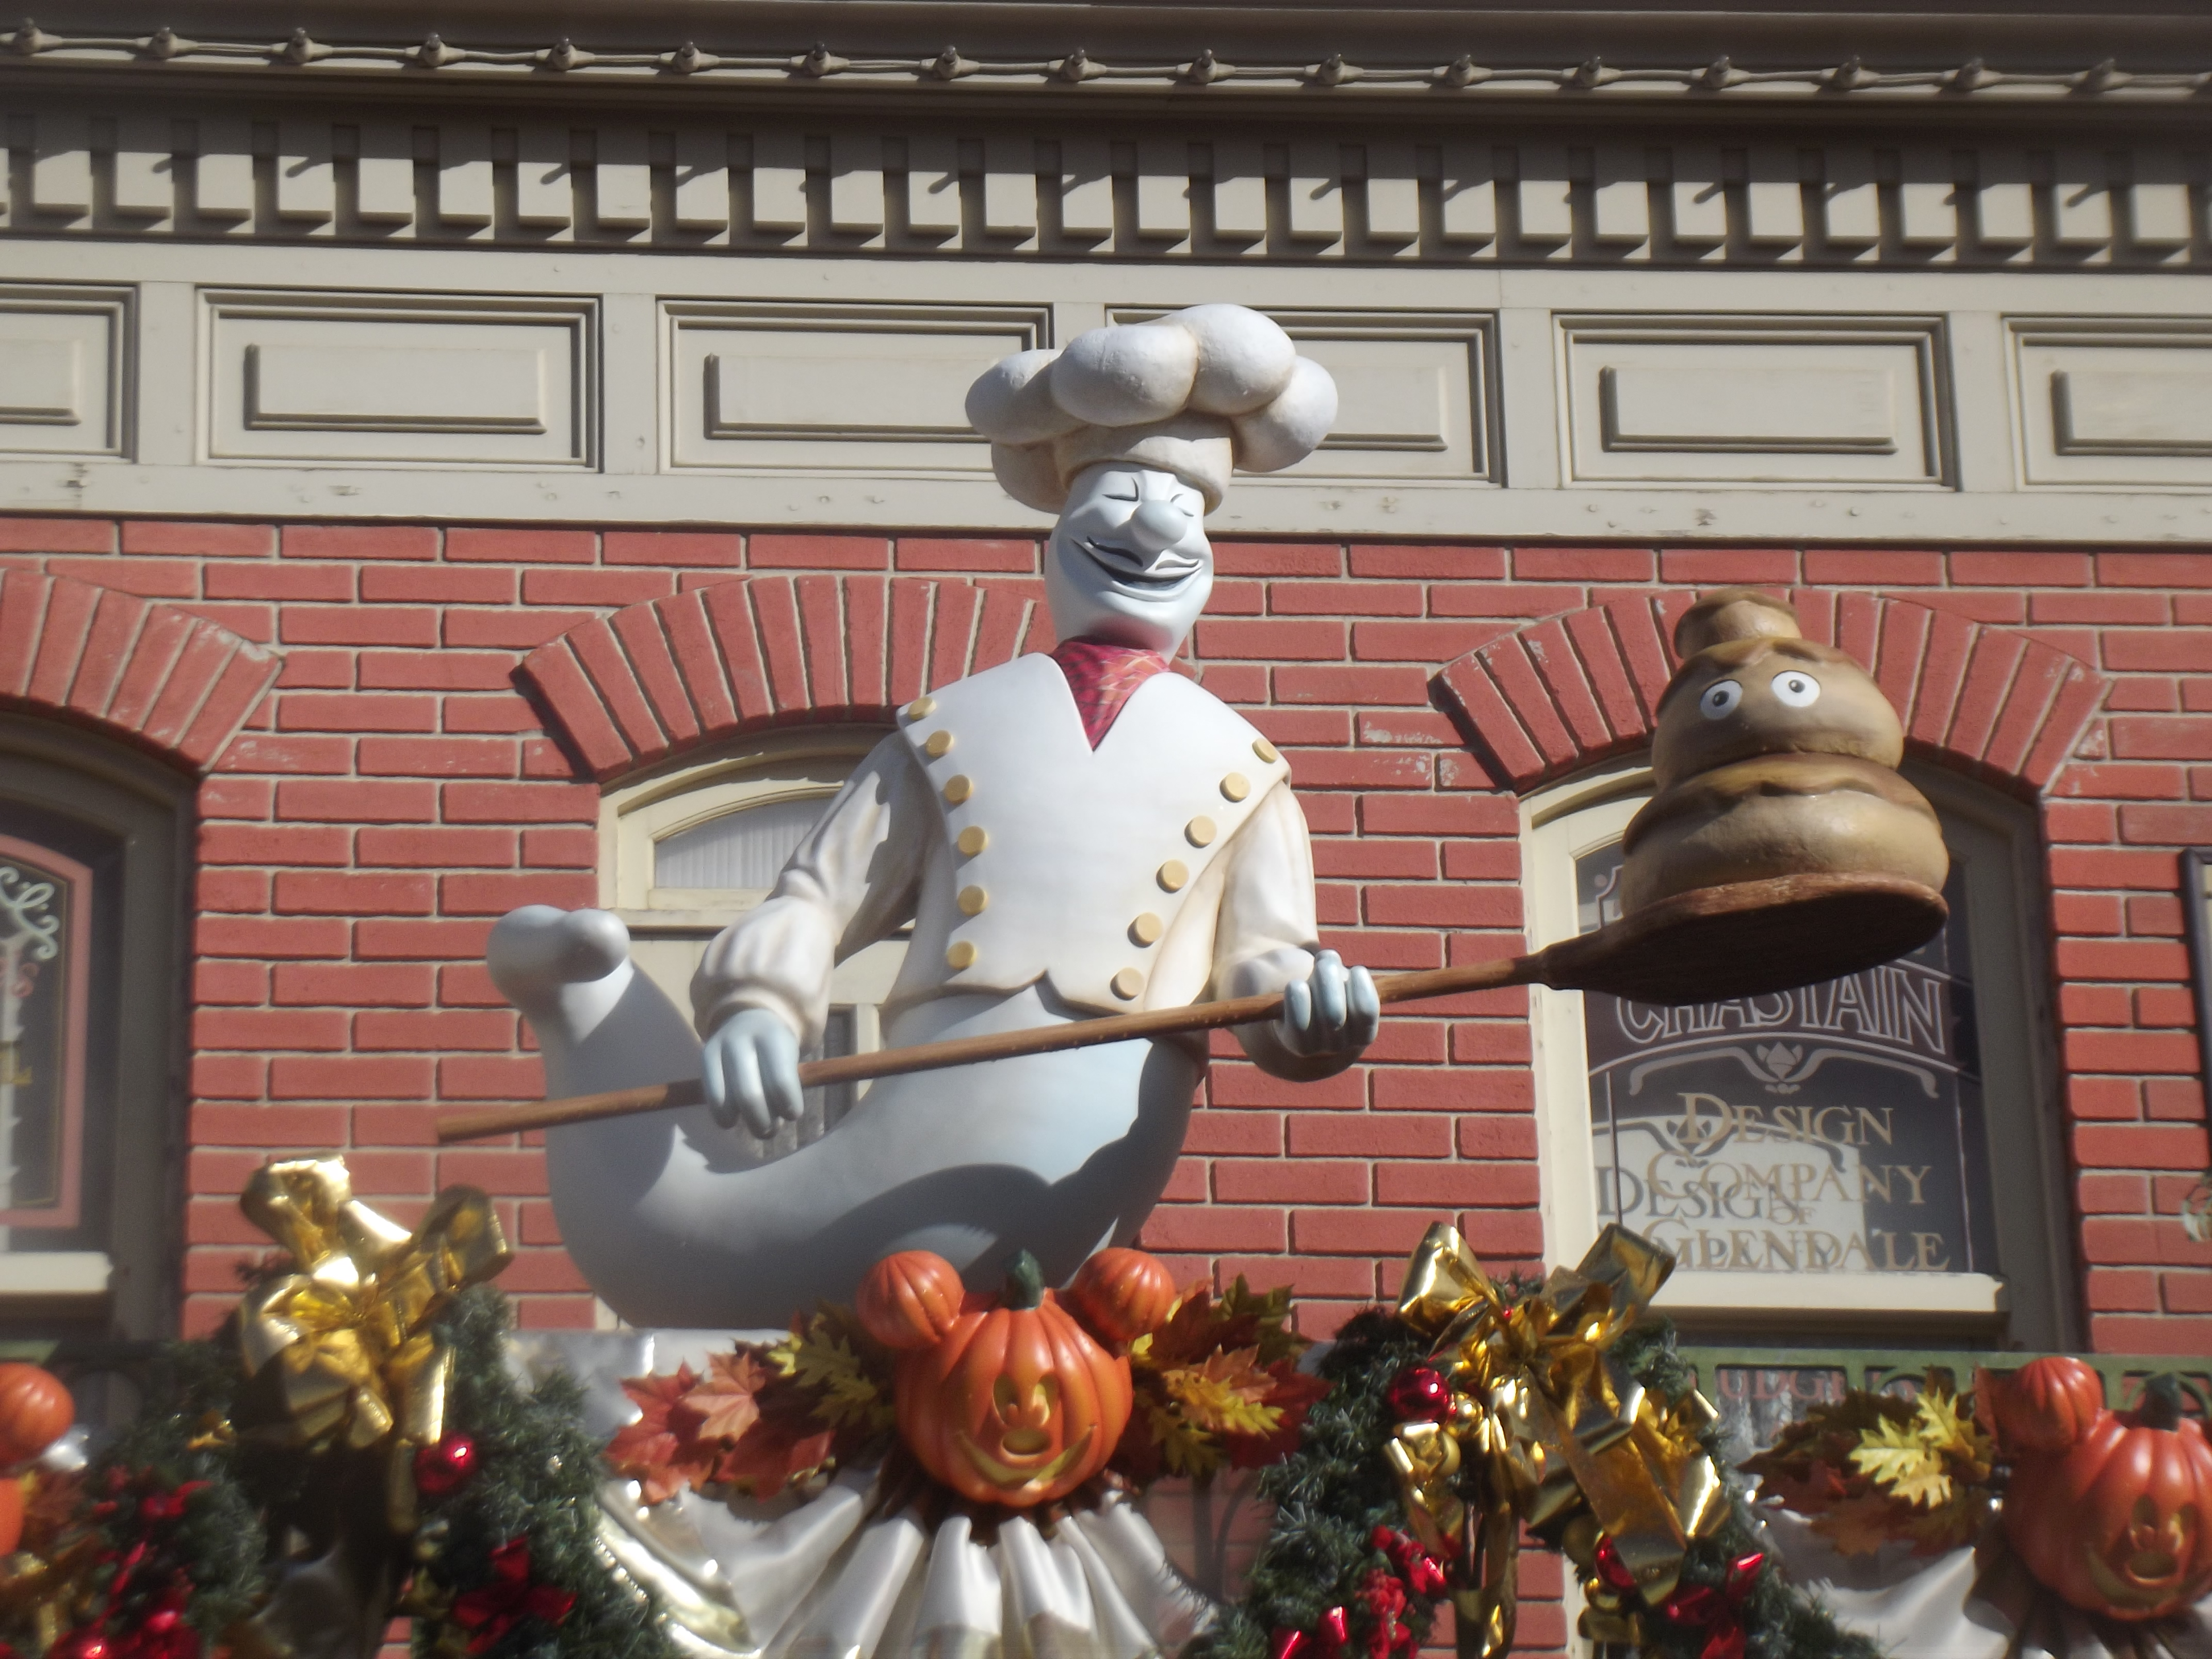 Chef ghost outside Market House Deli